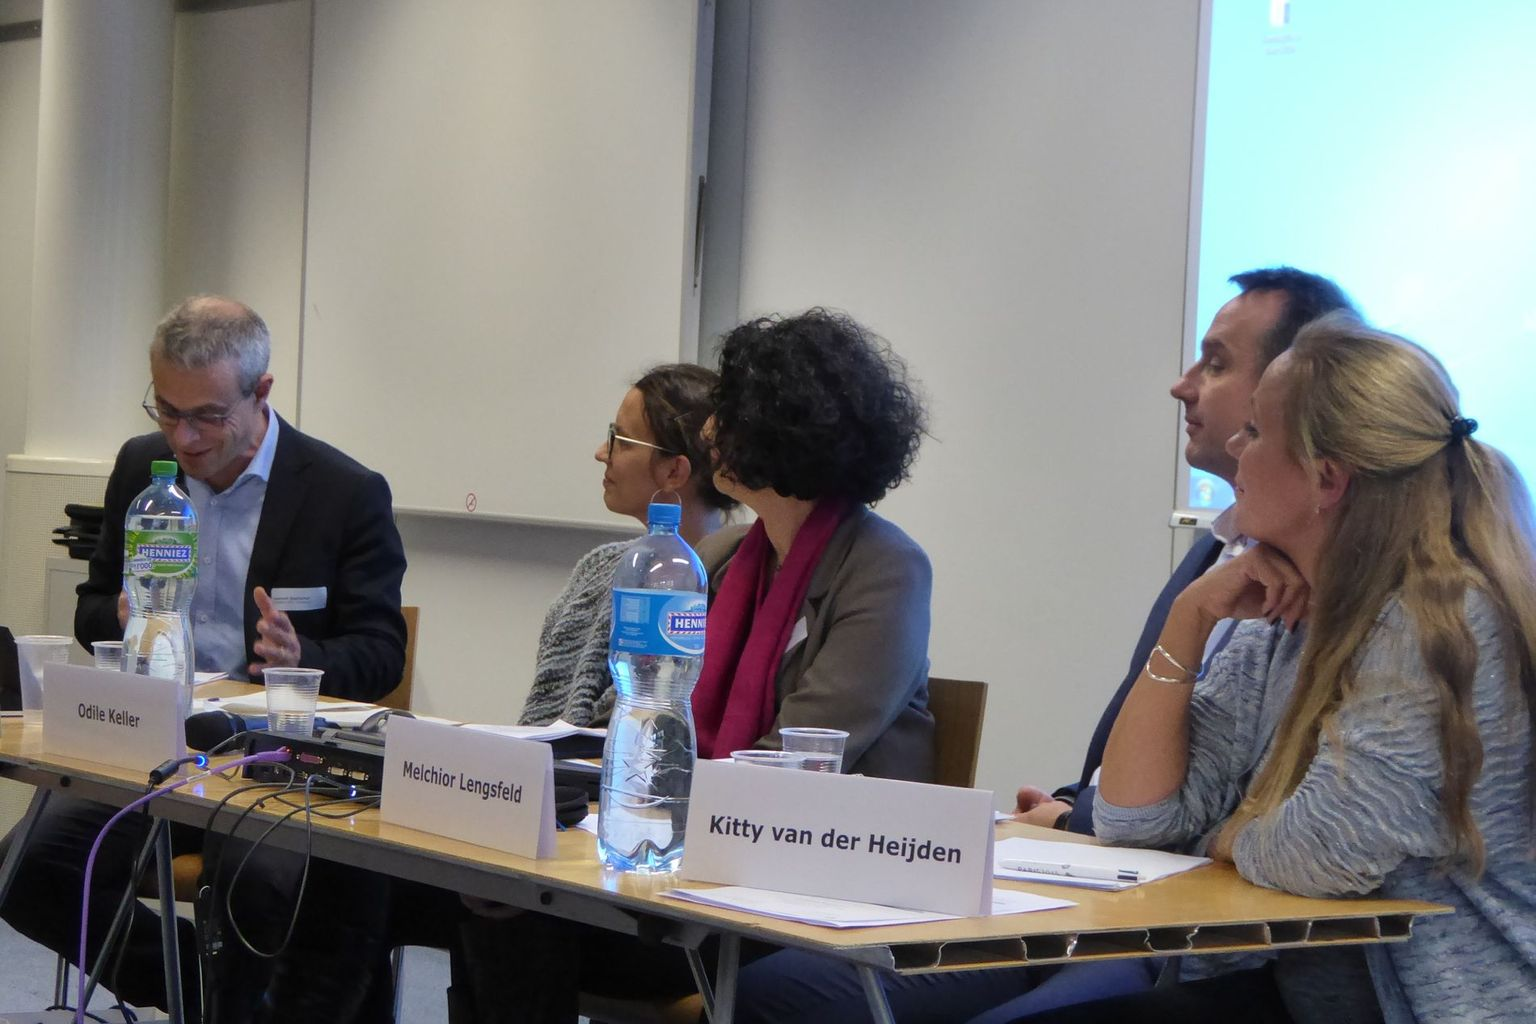 Panel with Kitty van der Heijden, Melchior Lengsfeld, Odile Keller, Isabel Günther and Laurent Goetschel